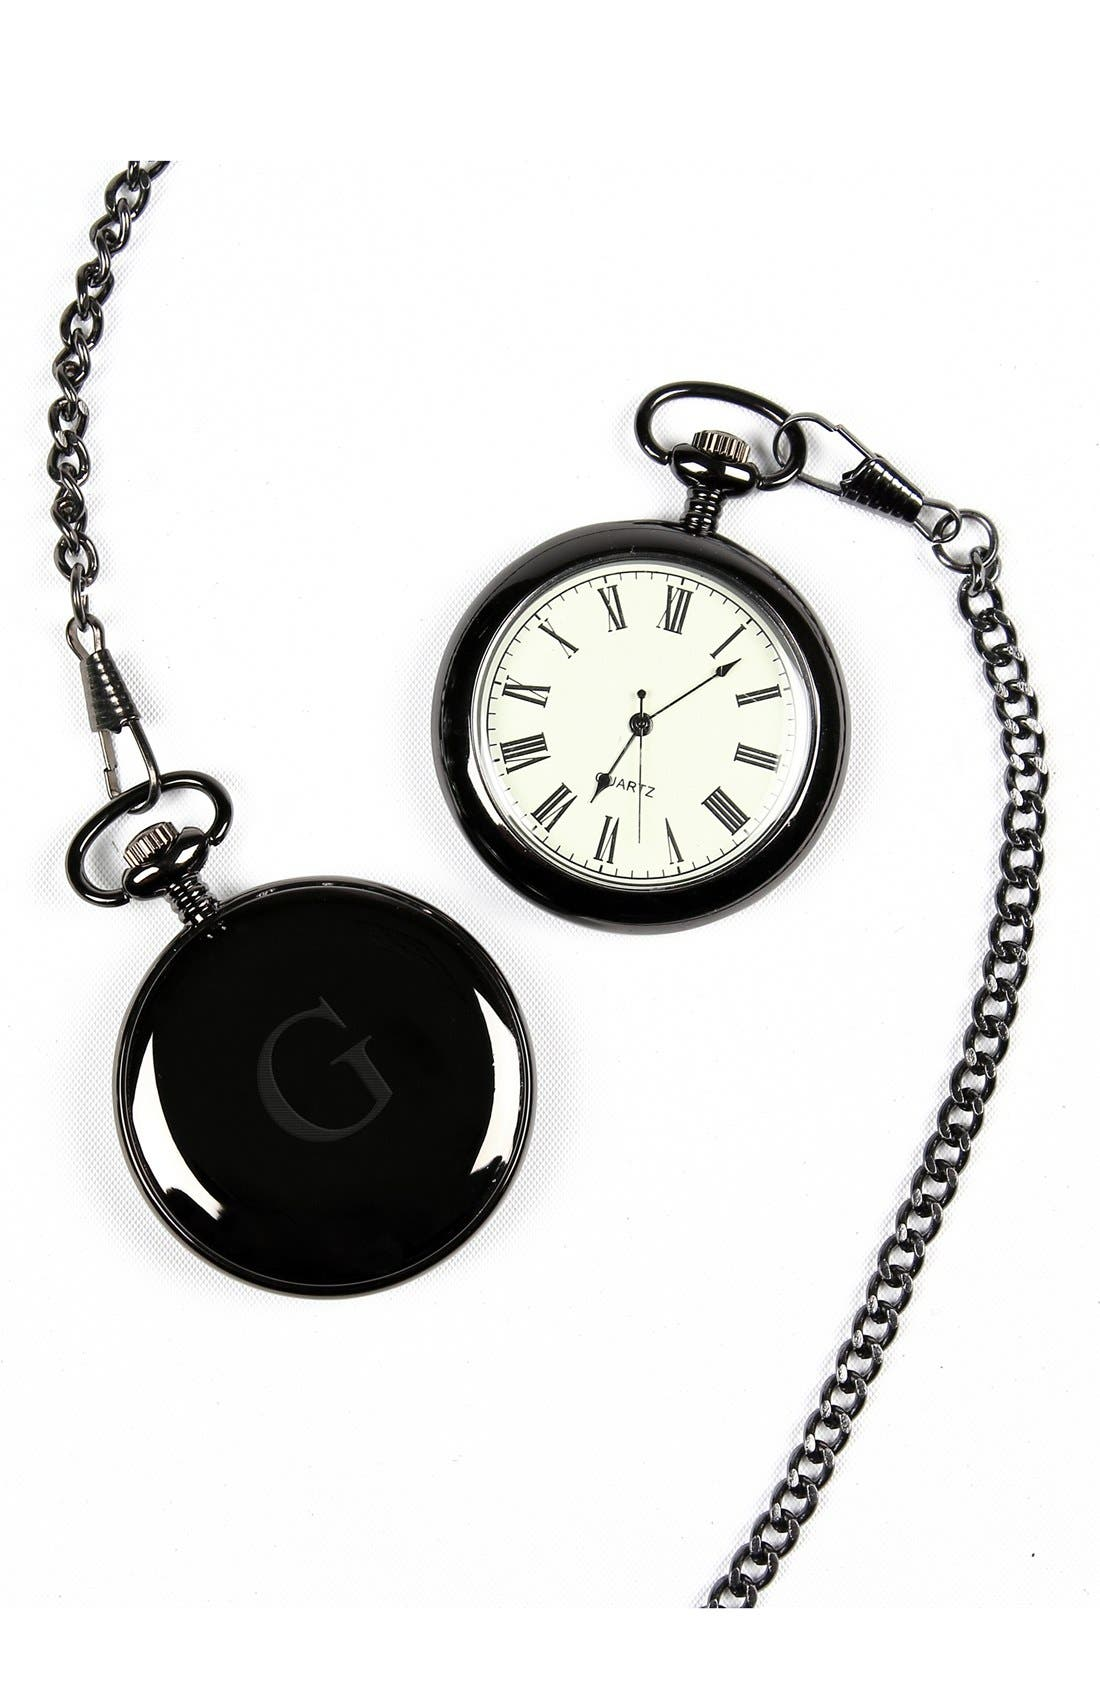 CATHY'S CONCEPTS Monogram Pocket Watch, 44mm